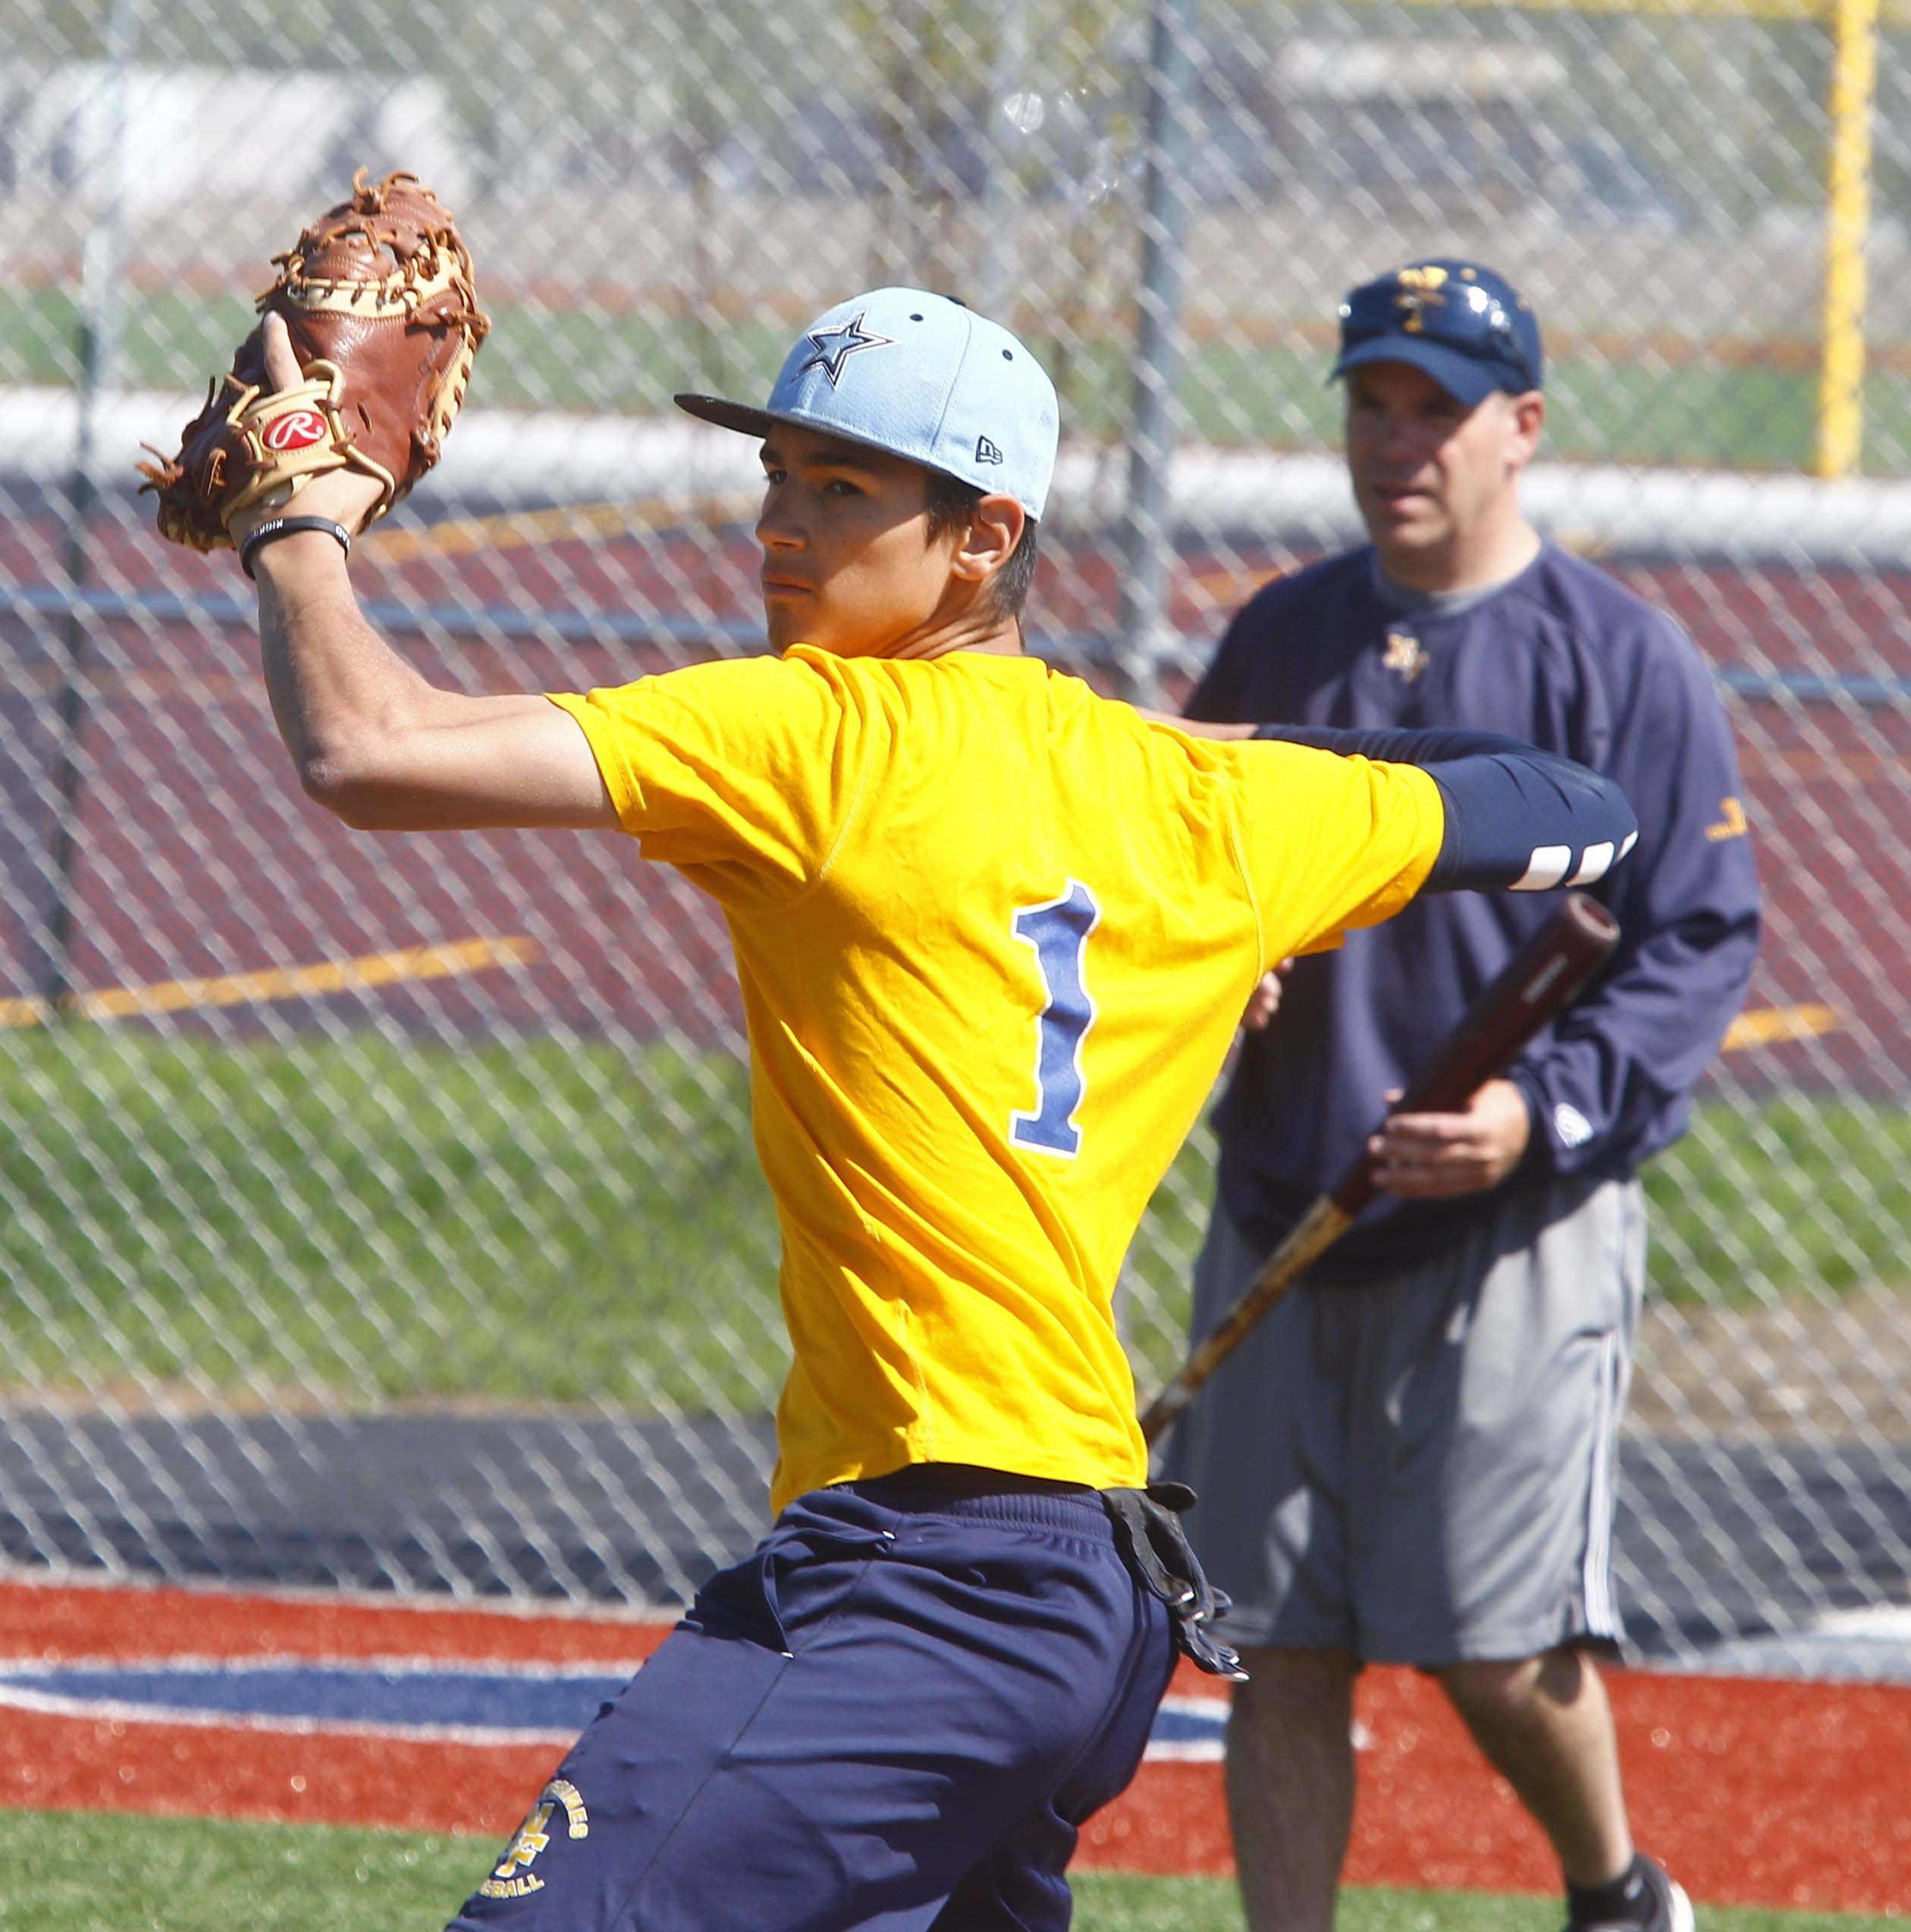 Catcher Chris Cardona and the Niagara Falls Wolverines  hope home-field advantage aids in their title quest.